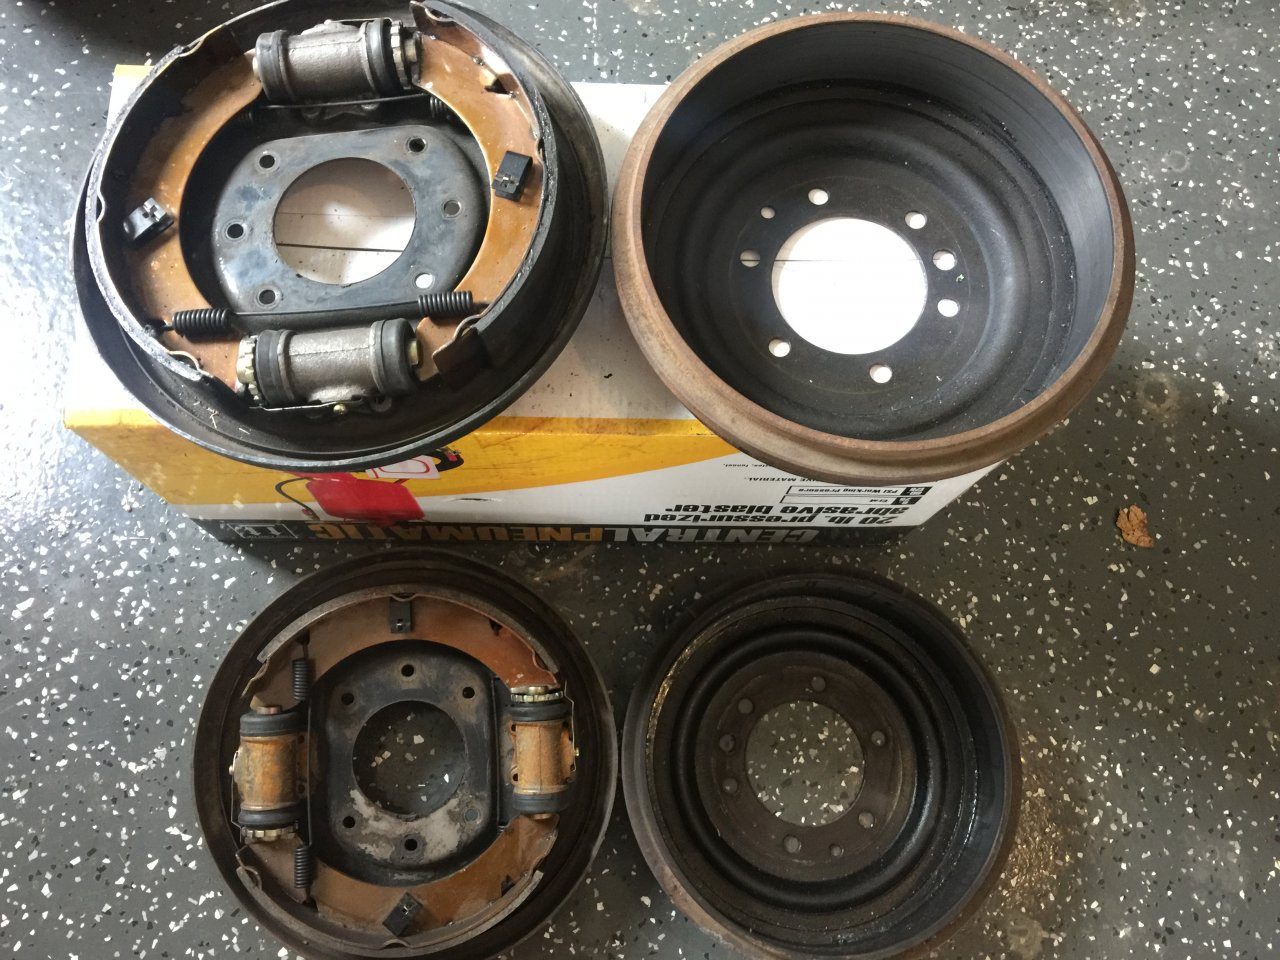 For Sale - Land Cruiser FJ40 Rear Drum Brakes from a '72 ...